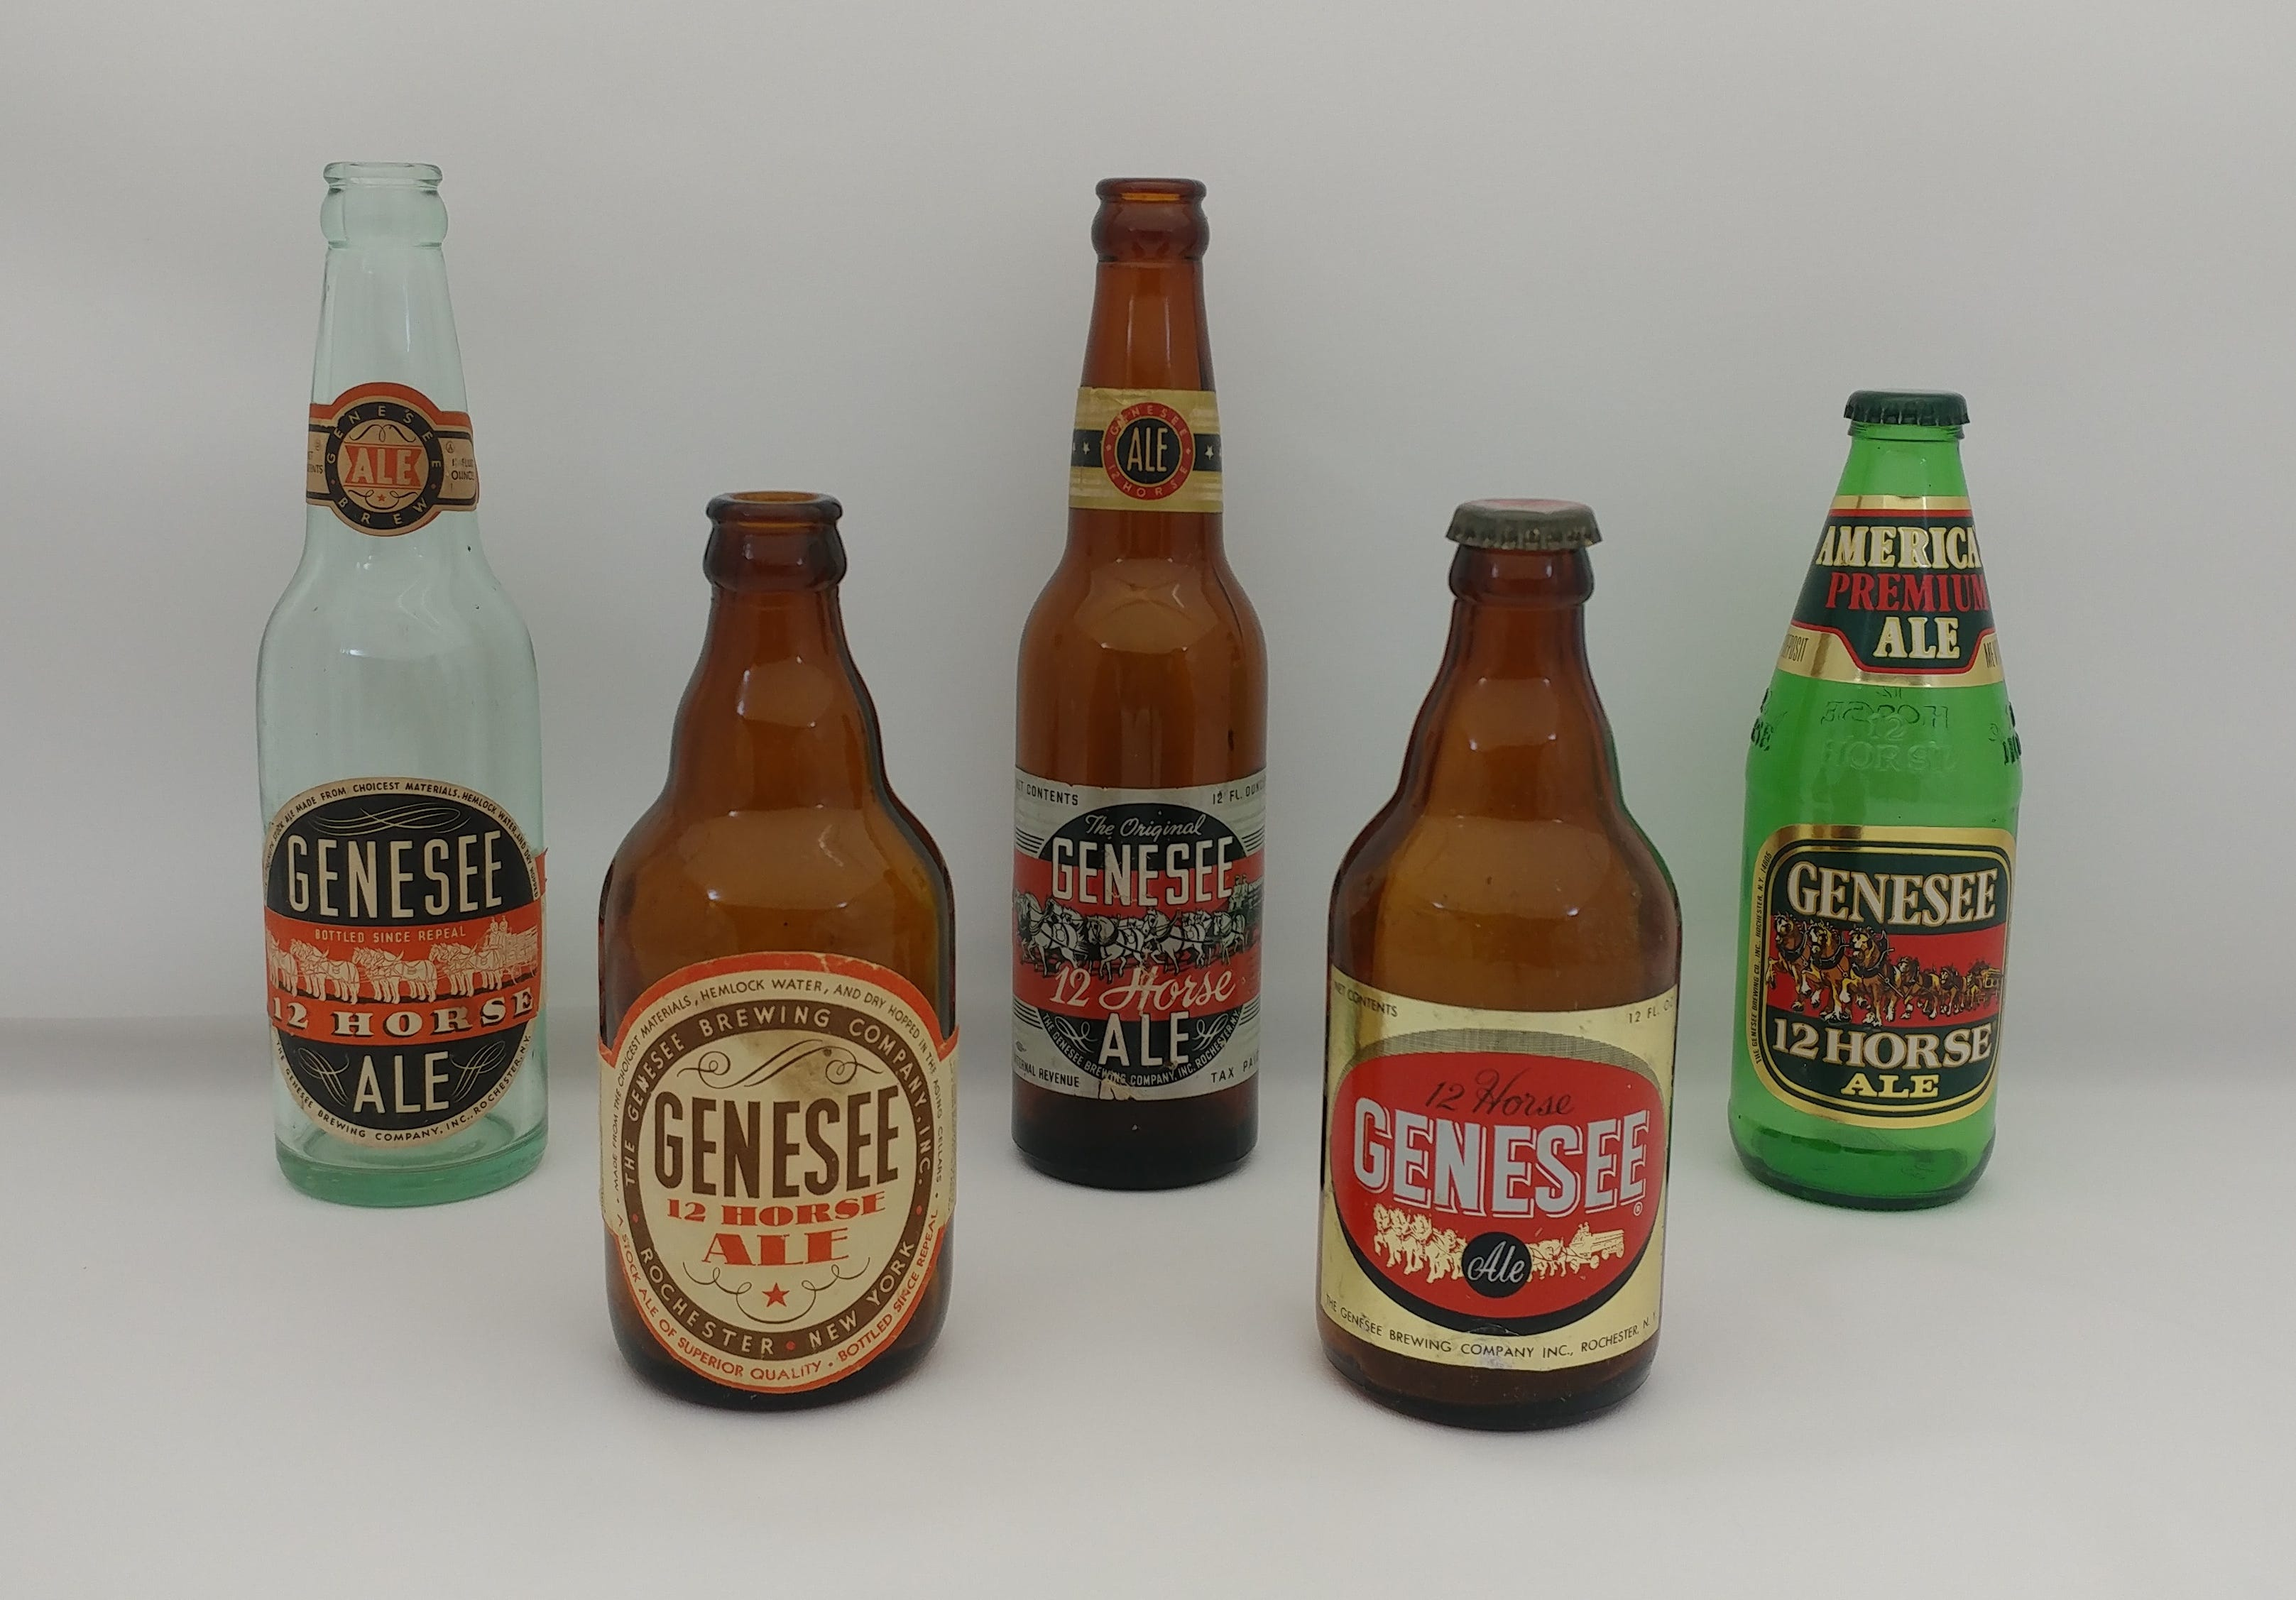 An assortment of Genesee 12 Horse Ale bottles through the years. From left to right: Clear bottle and middle left are between 1933 and 1936; Middle is from the 1940s; Middle right is mid to late 1950s; Right is from 1982.